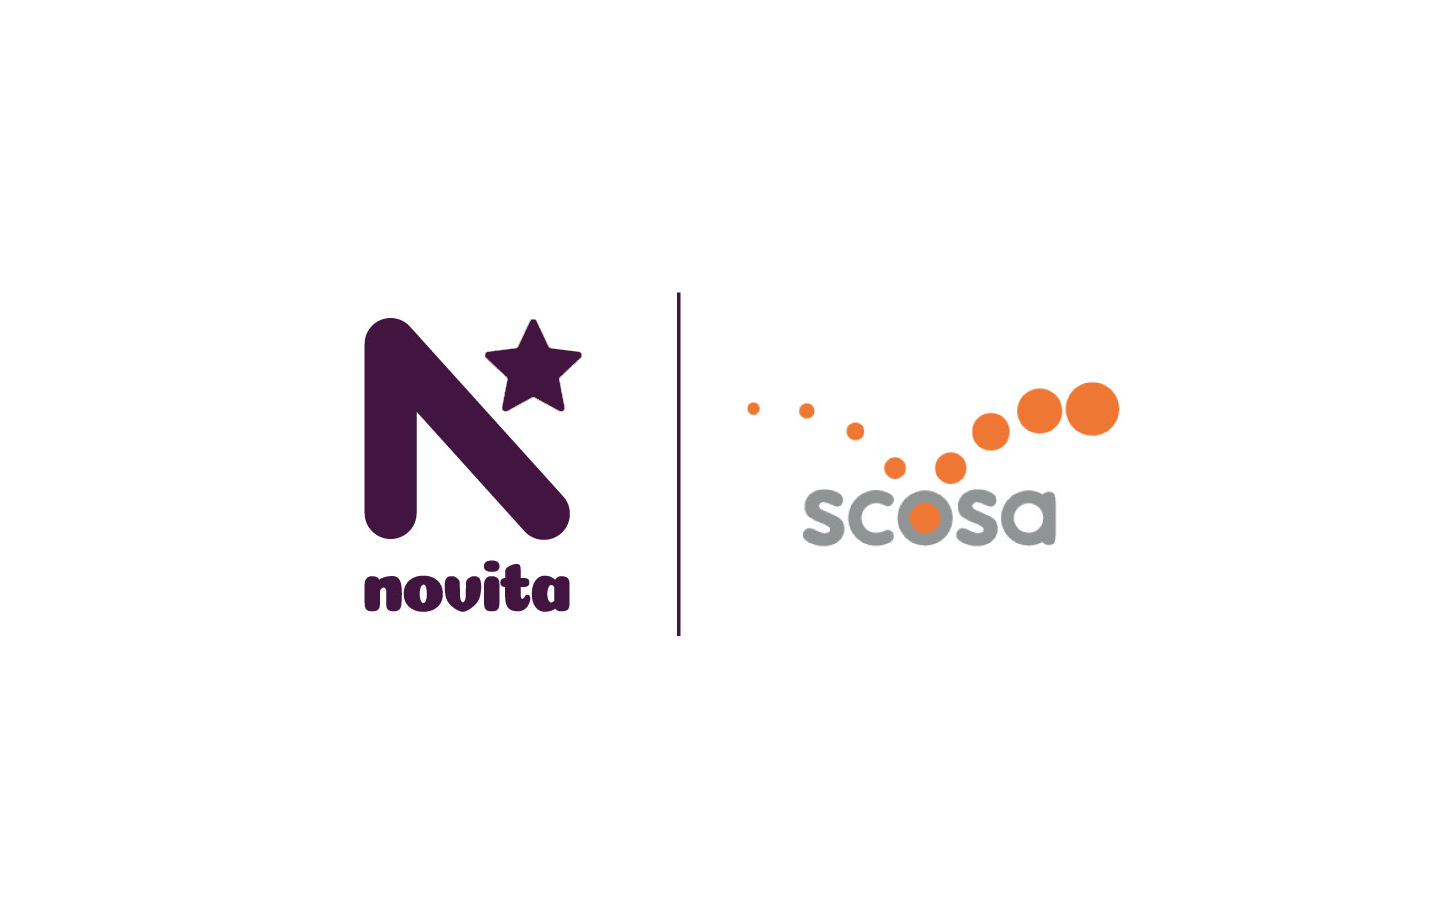 Potential merger of Novita and scosa